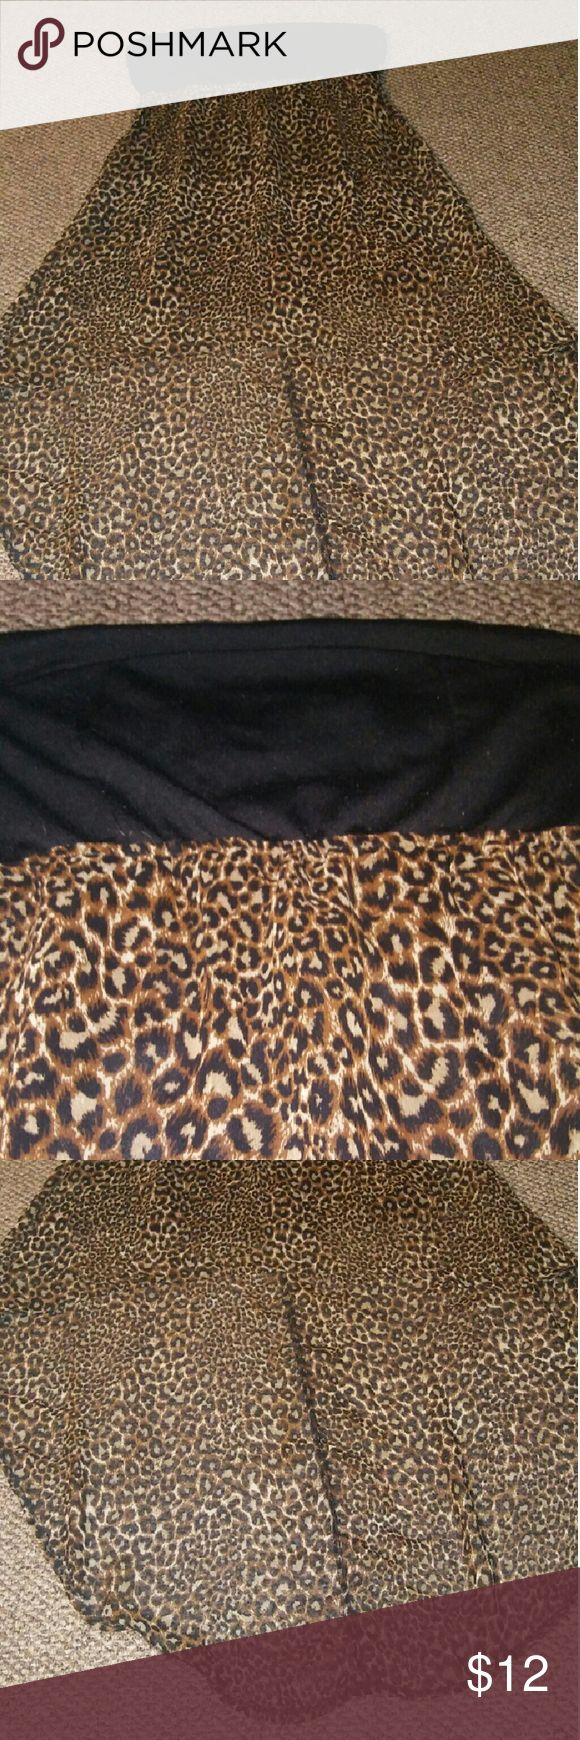 Cheetah hi low Never worn Rue 21 Hi low Back has a small opening on top (will add pic later!) Rue 21 Dresses High Low